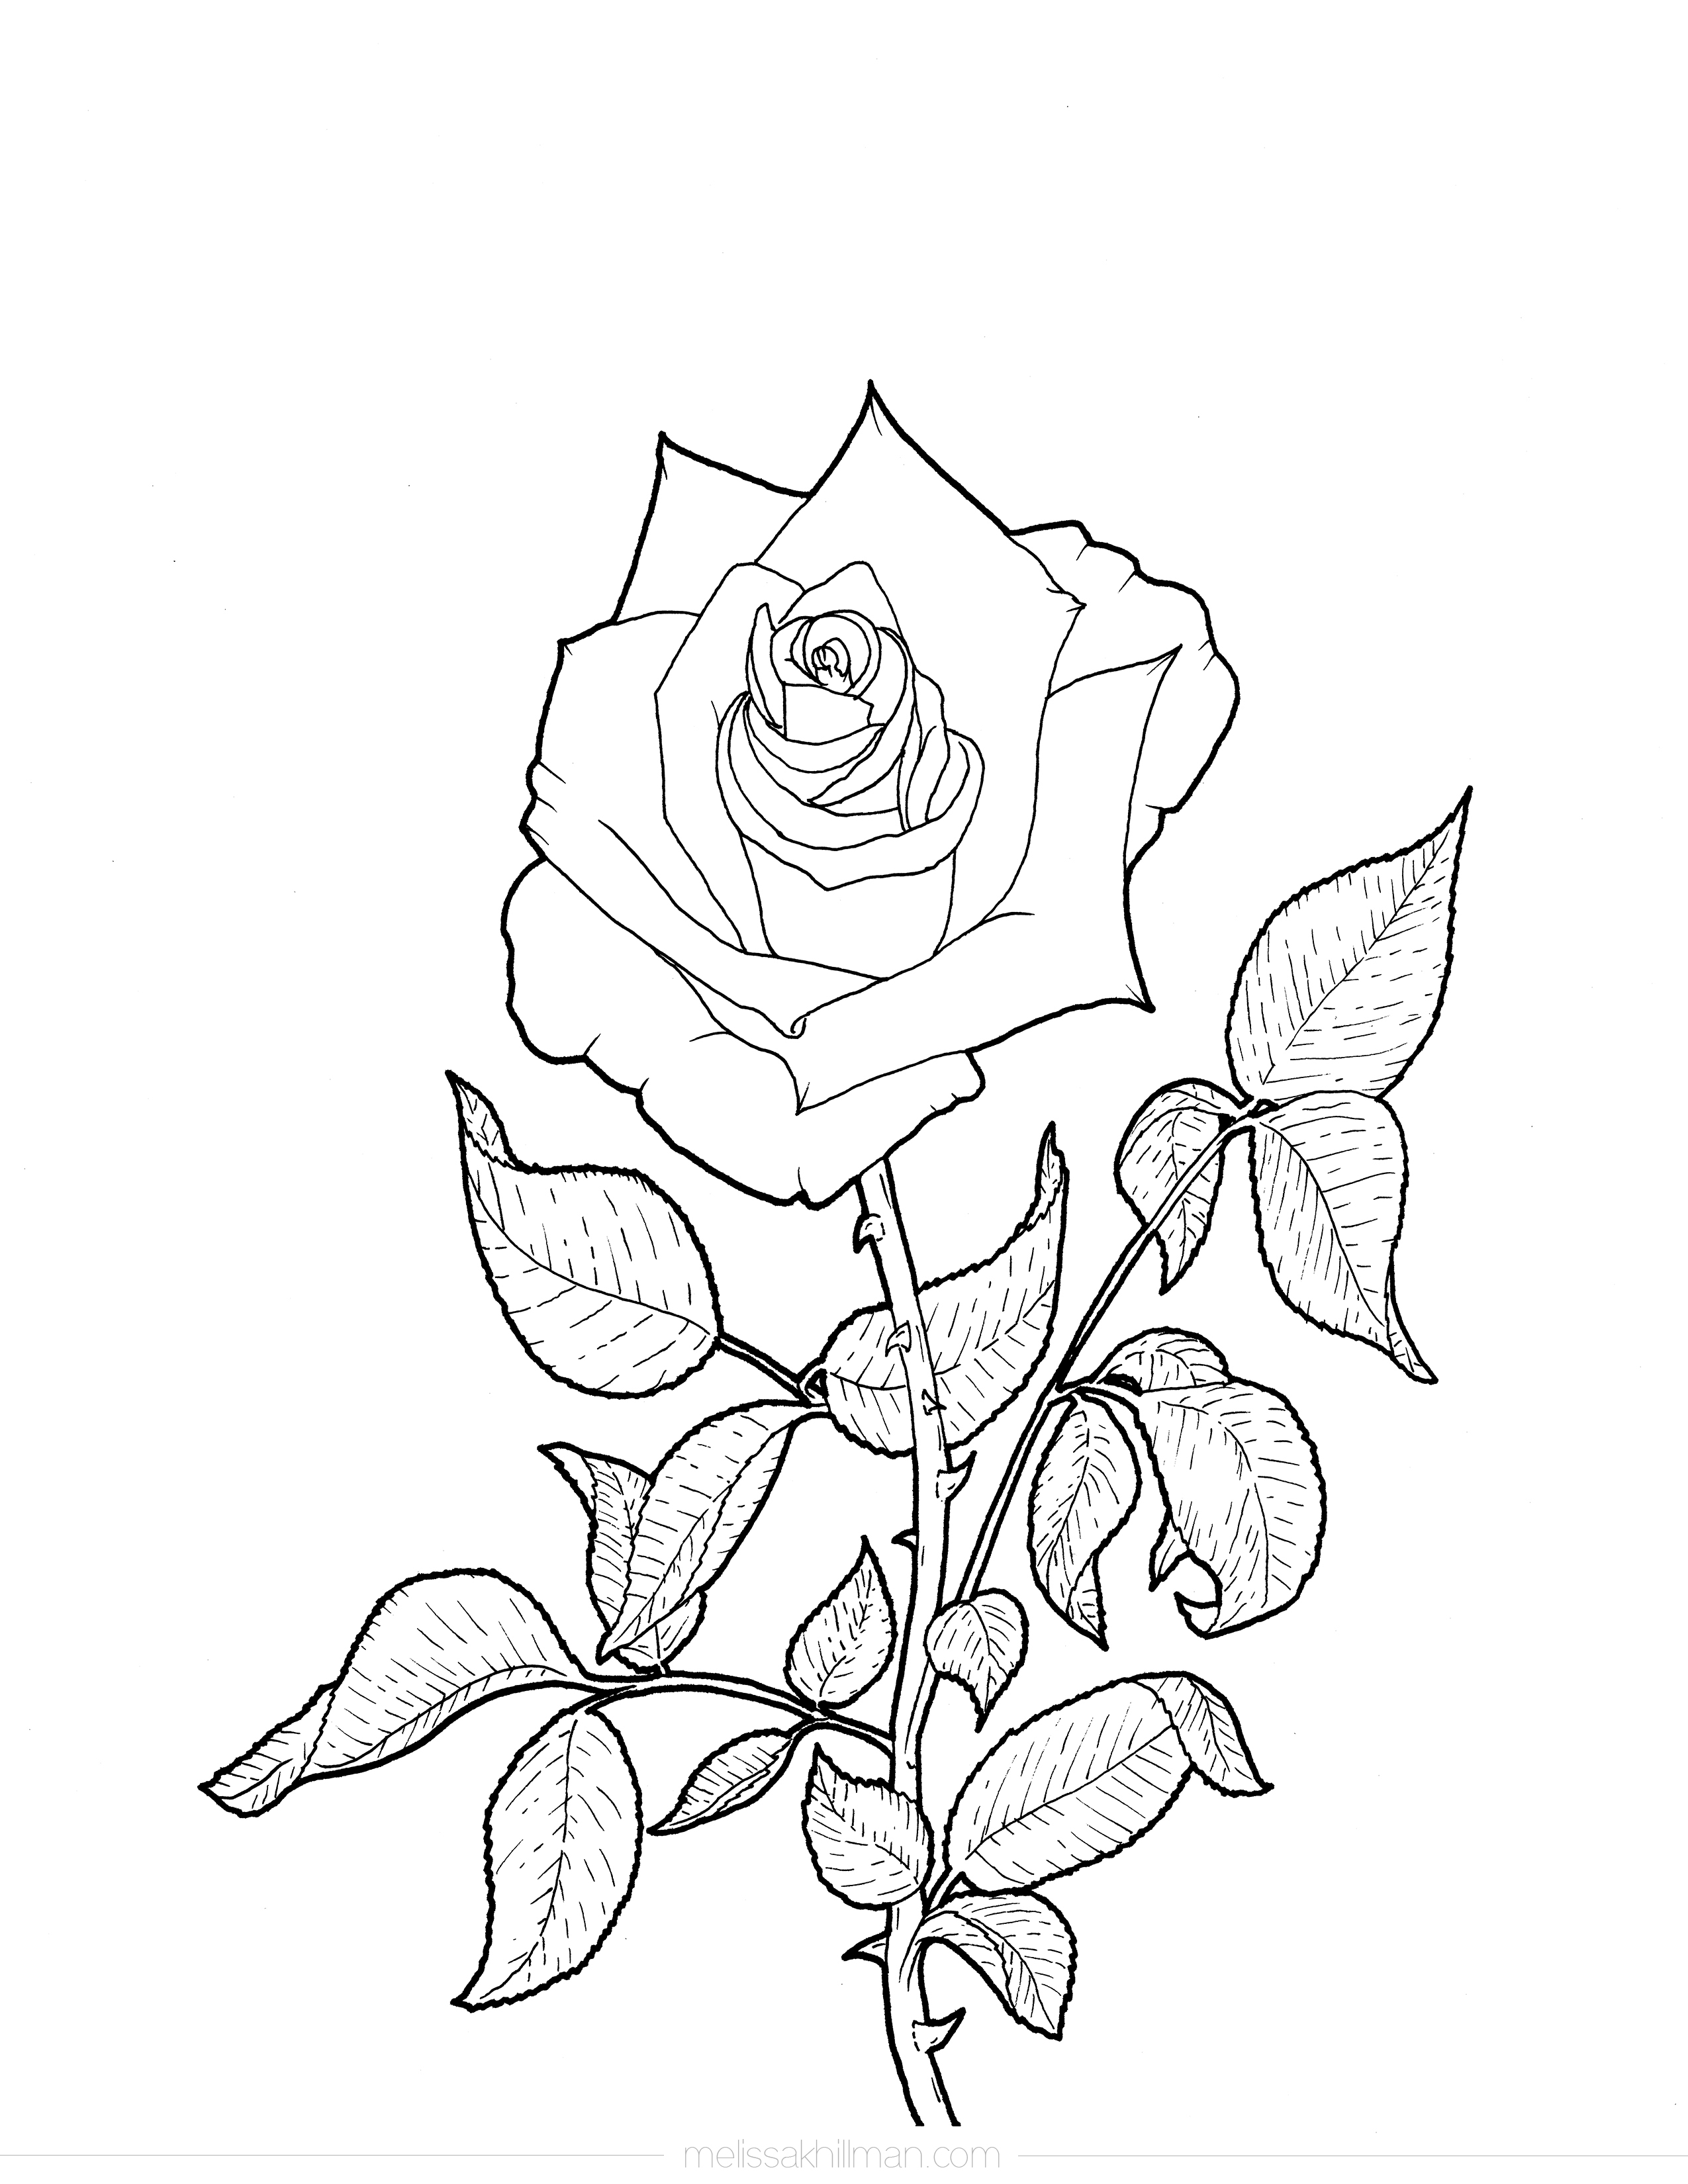 rose color sheets rose garden drawing at getdrawings free download rose sheets color